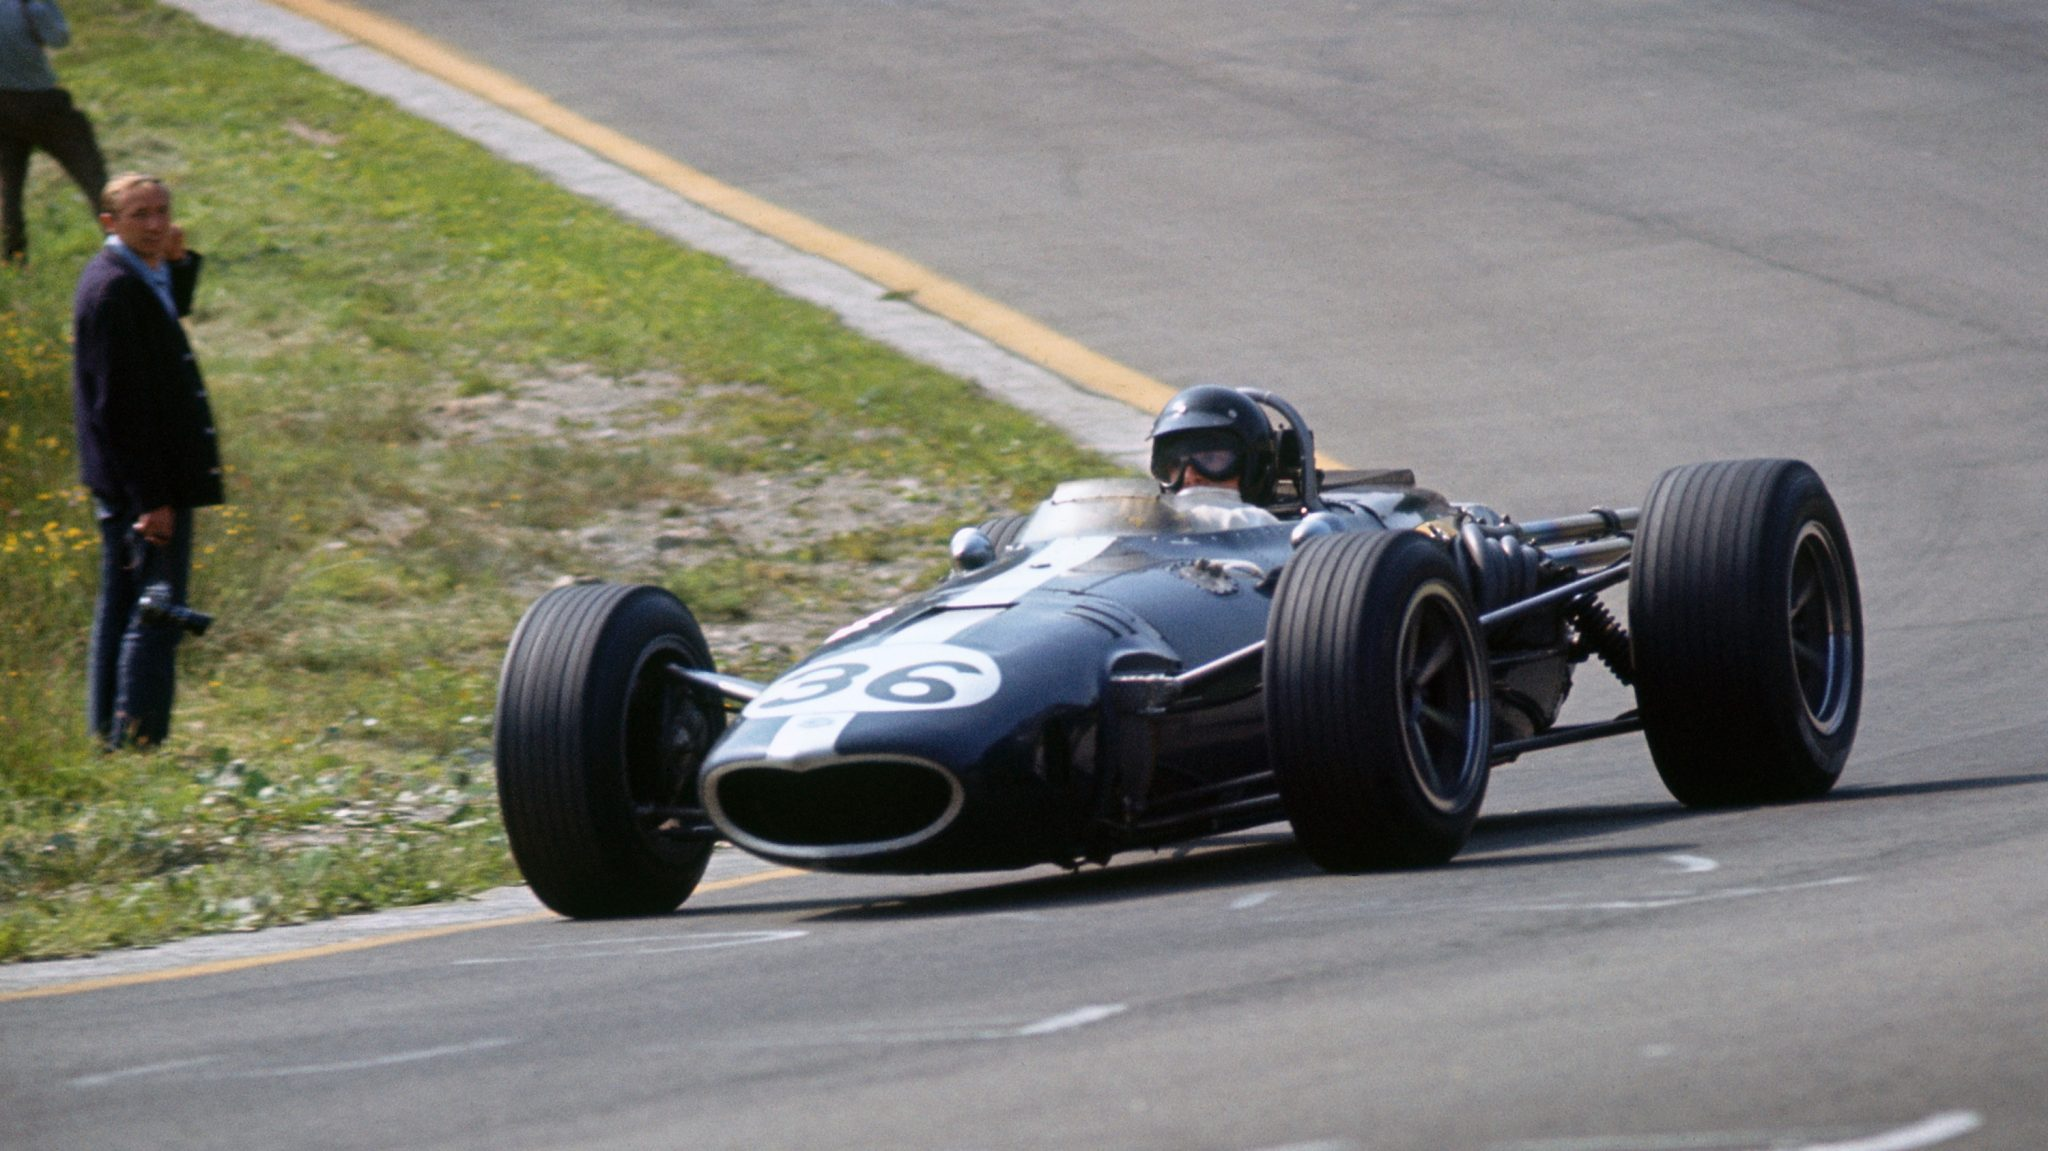 https://www.formula1.com/content/fom-website/en/latest/headlines/2018/1/dan-gurney--1931-2018/_jcr_content/articleContent/manual_gallery/image1.img.2048.medium.jpg/1516008429322.jpg